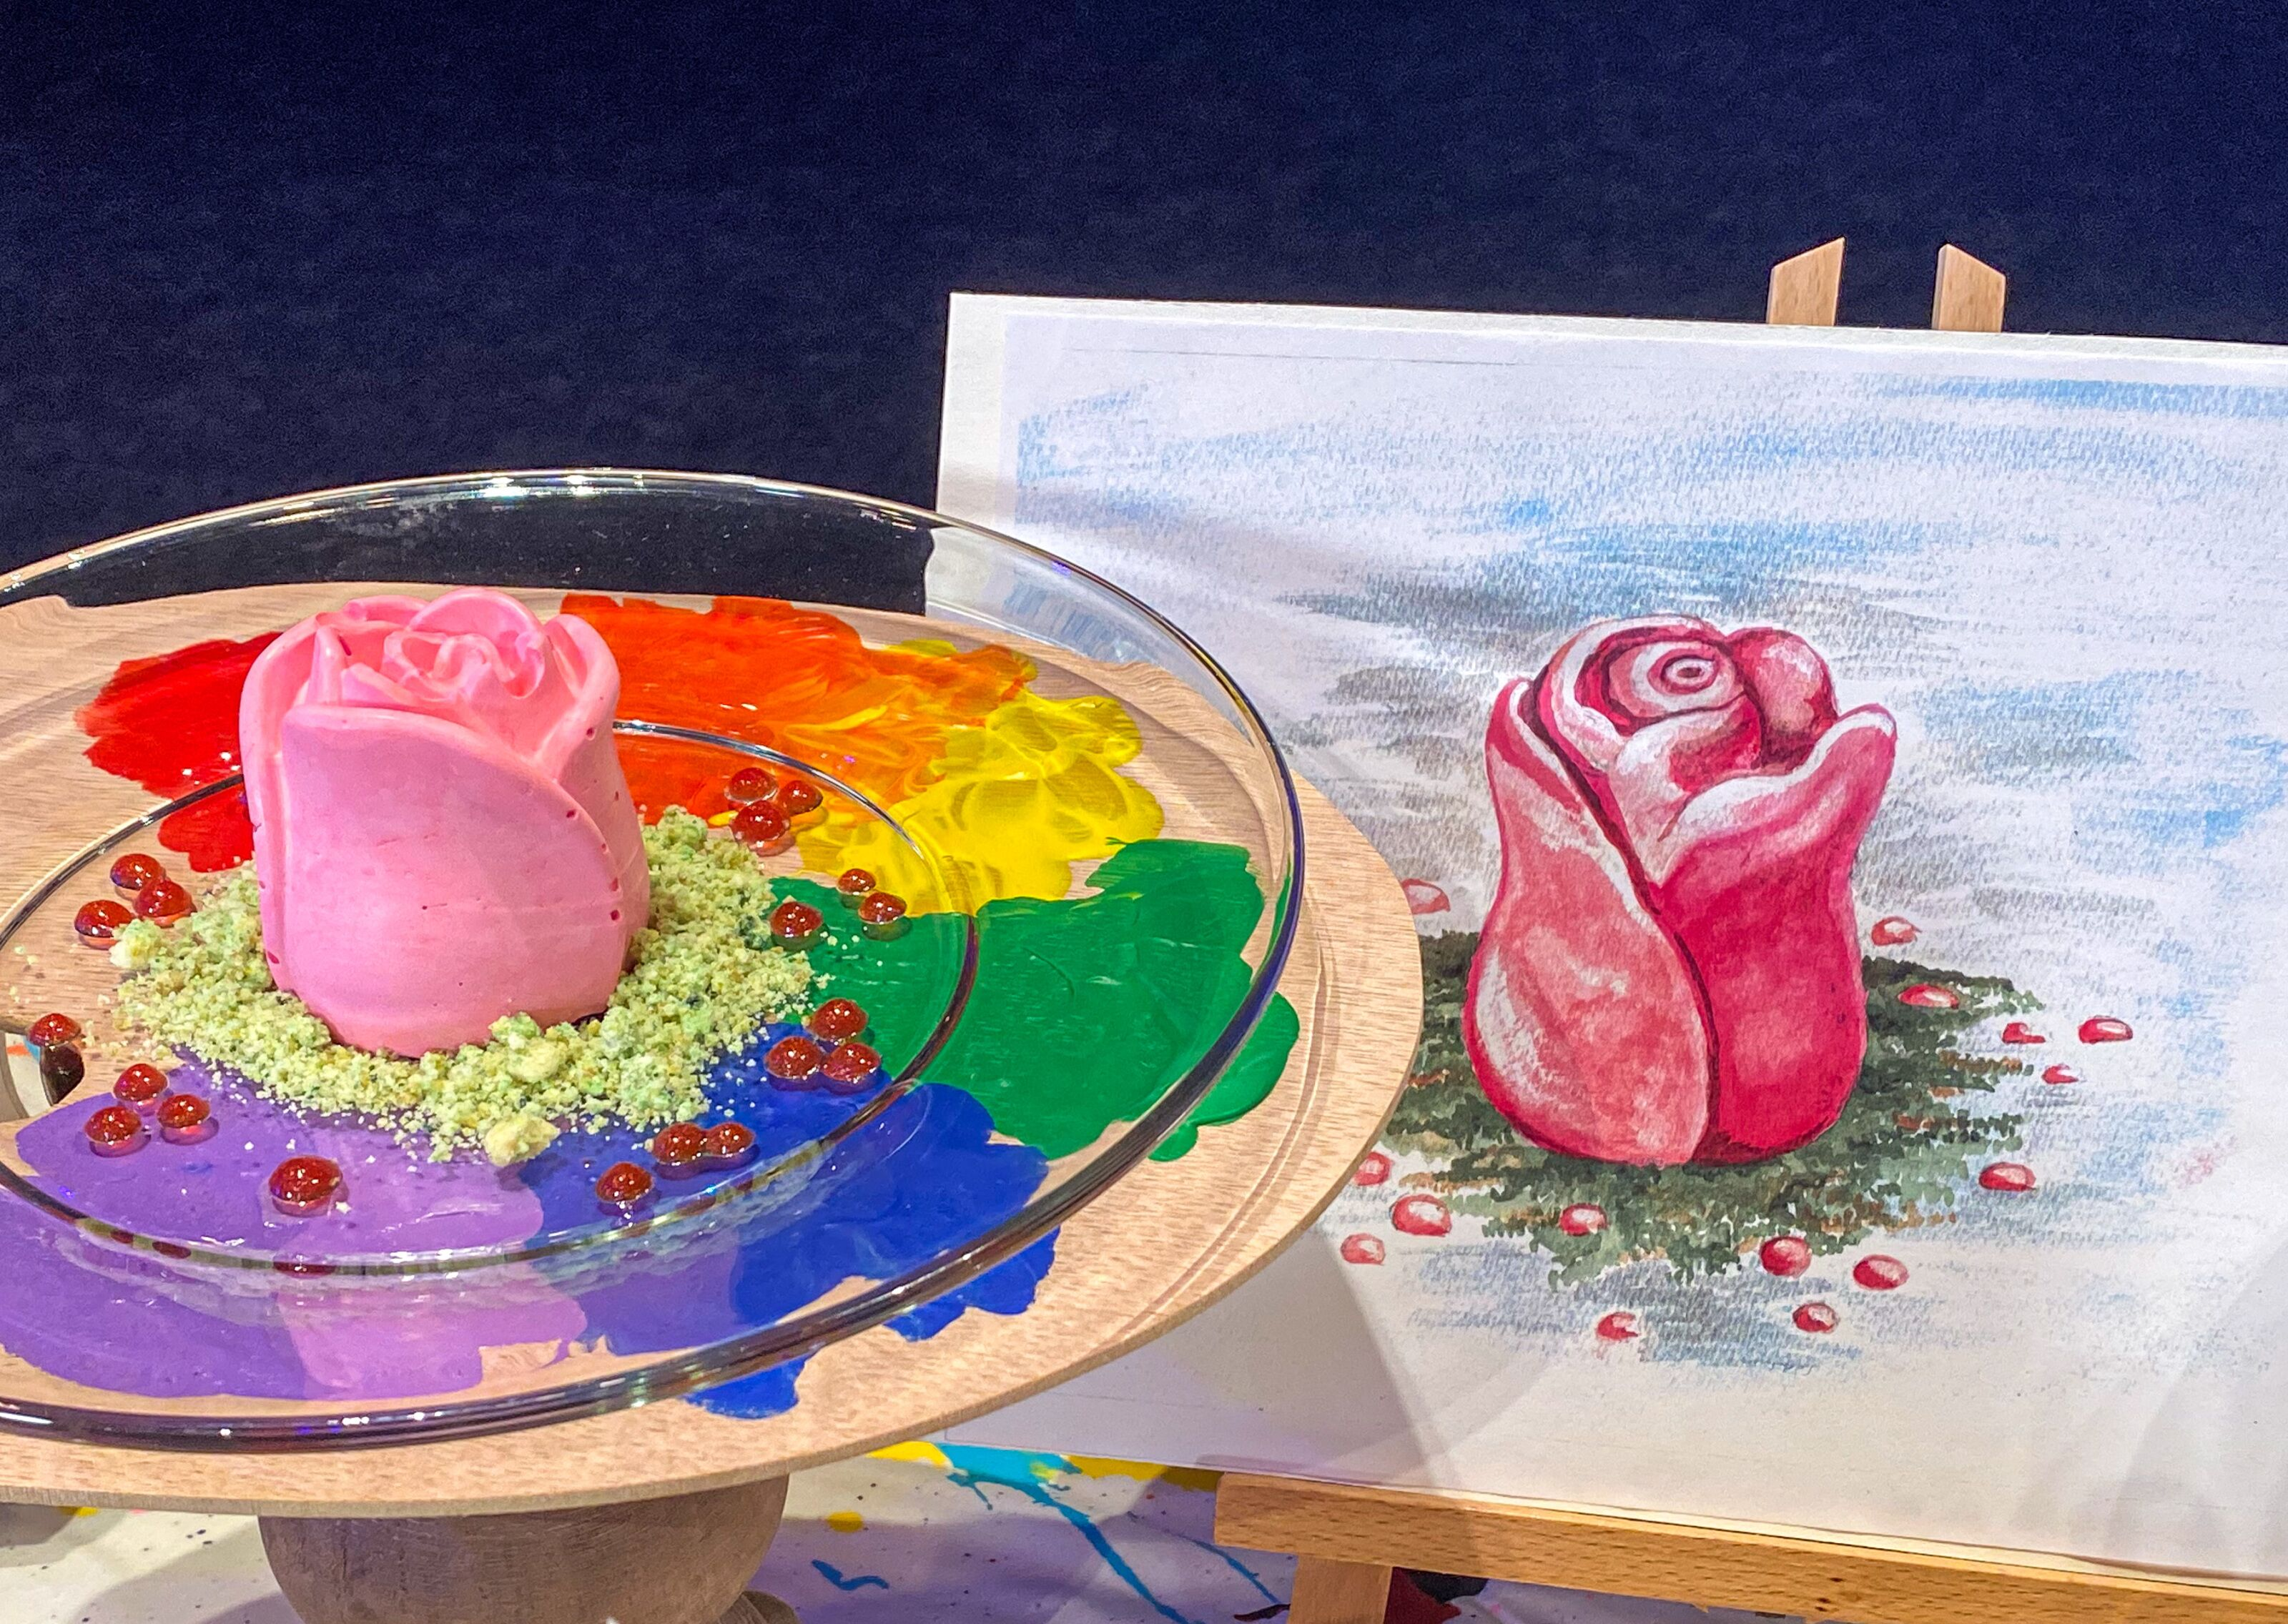 Epcot Festival of the Arts: Colorful, culinary creativity is a feast for the senses